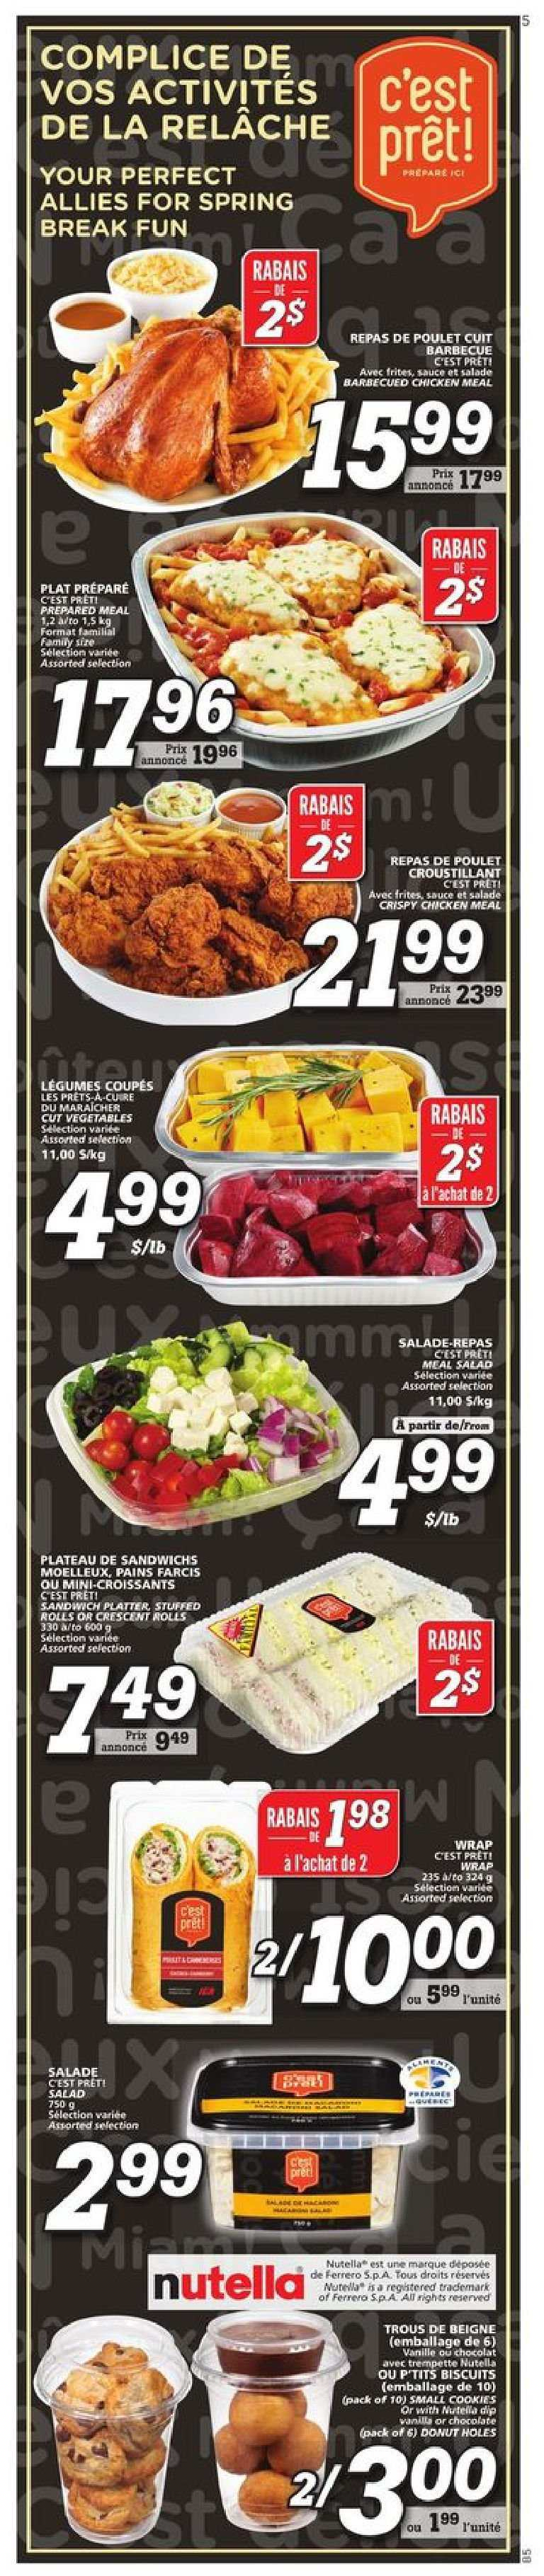 IGA Flyer  - February 28, 2019 - March 06, 2019. Page 11.